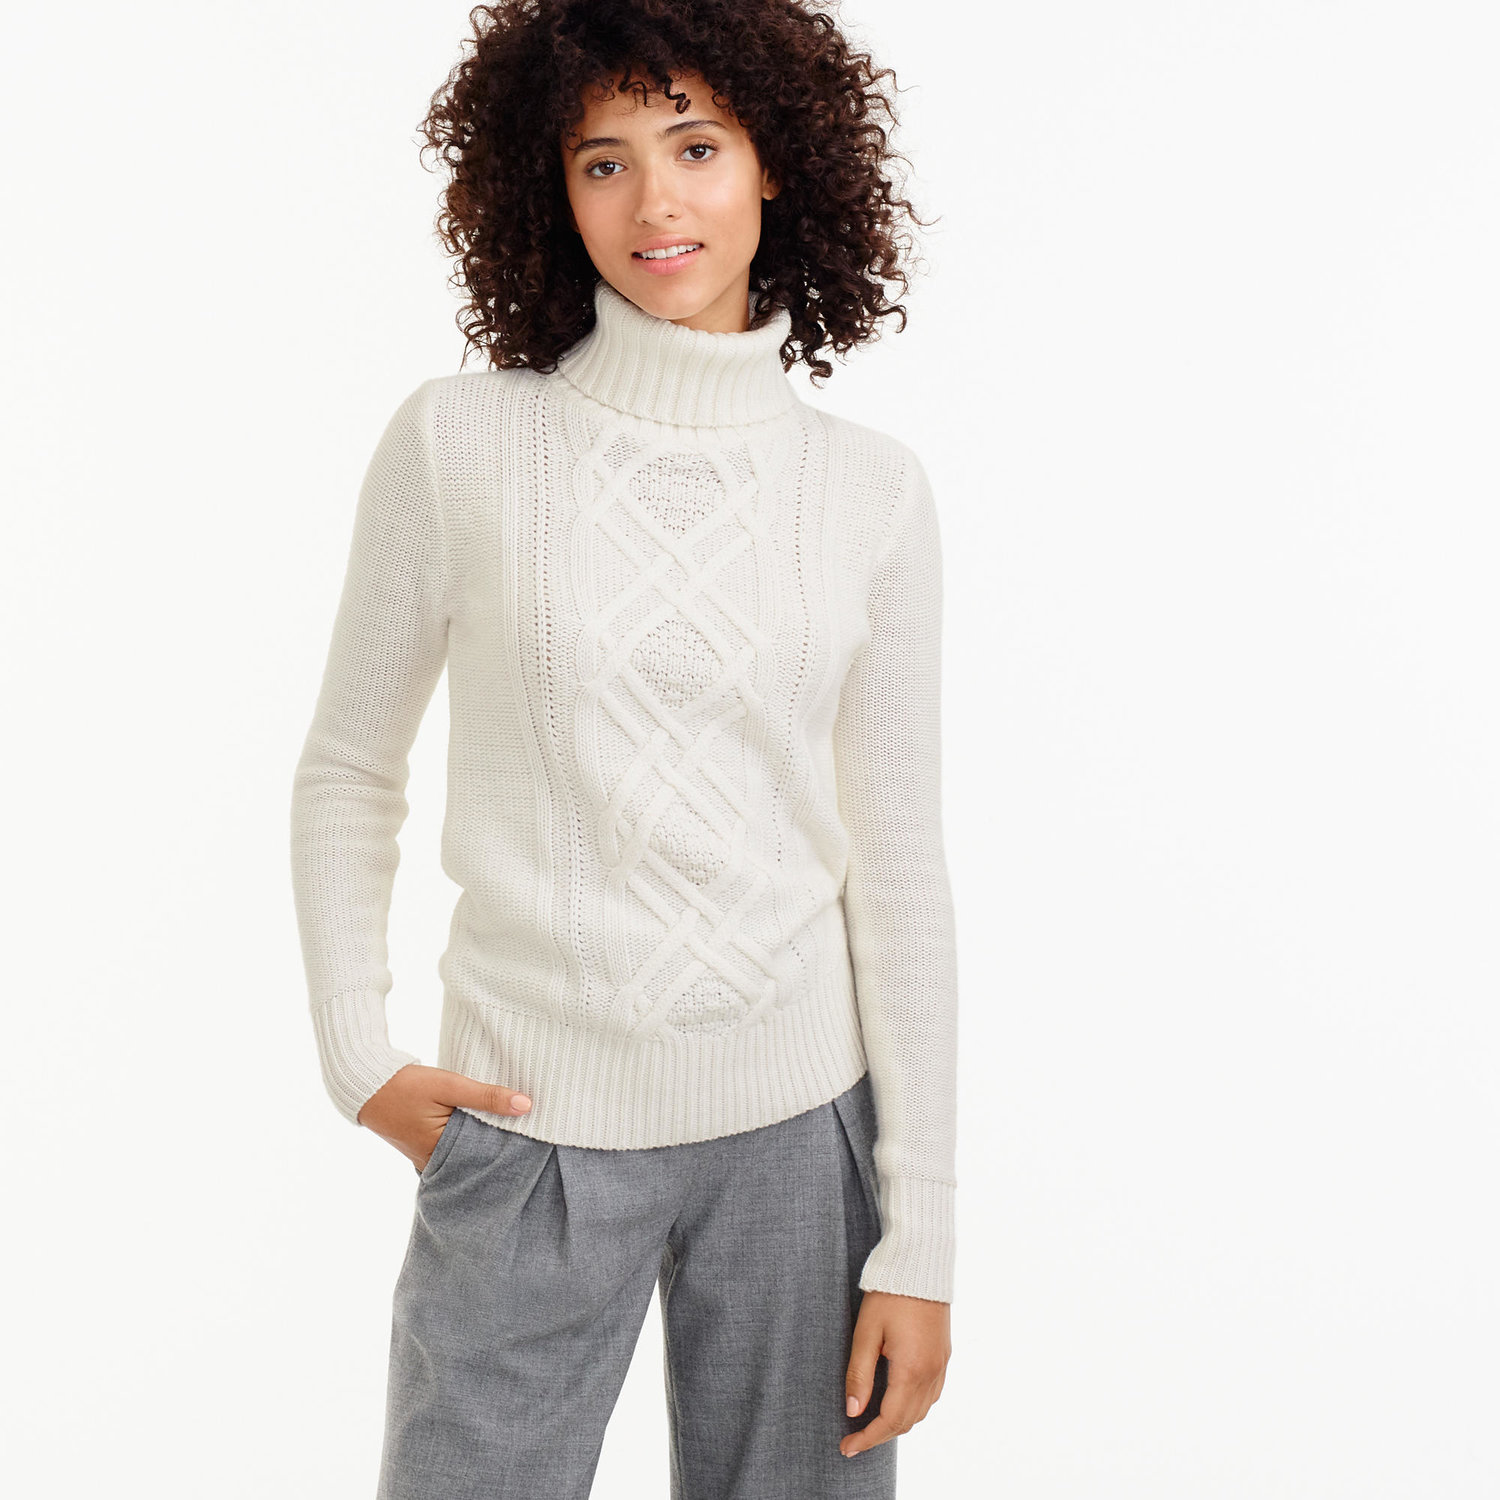 4f997803a1243 J Crew Cable Knit Sweater with Turtleneck